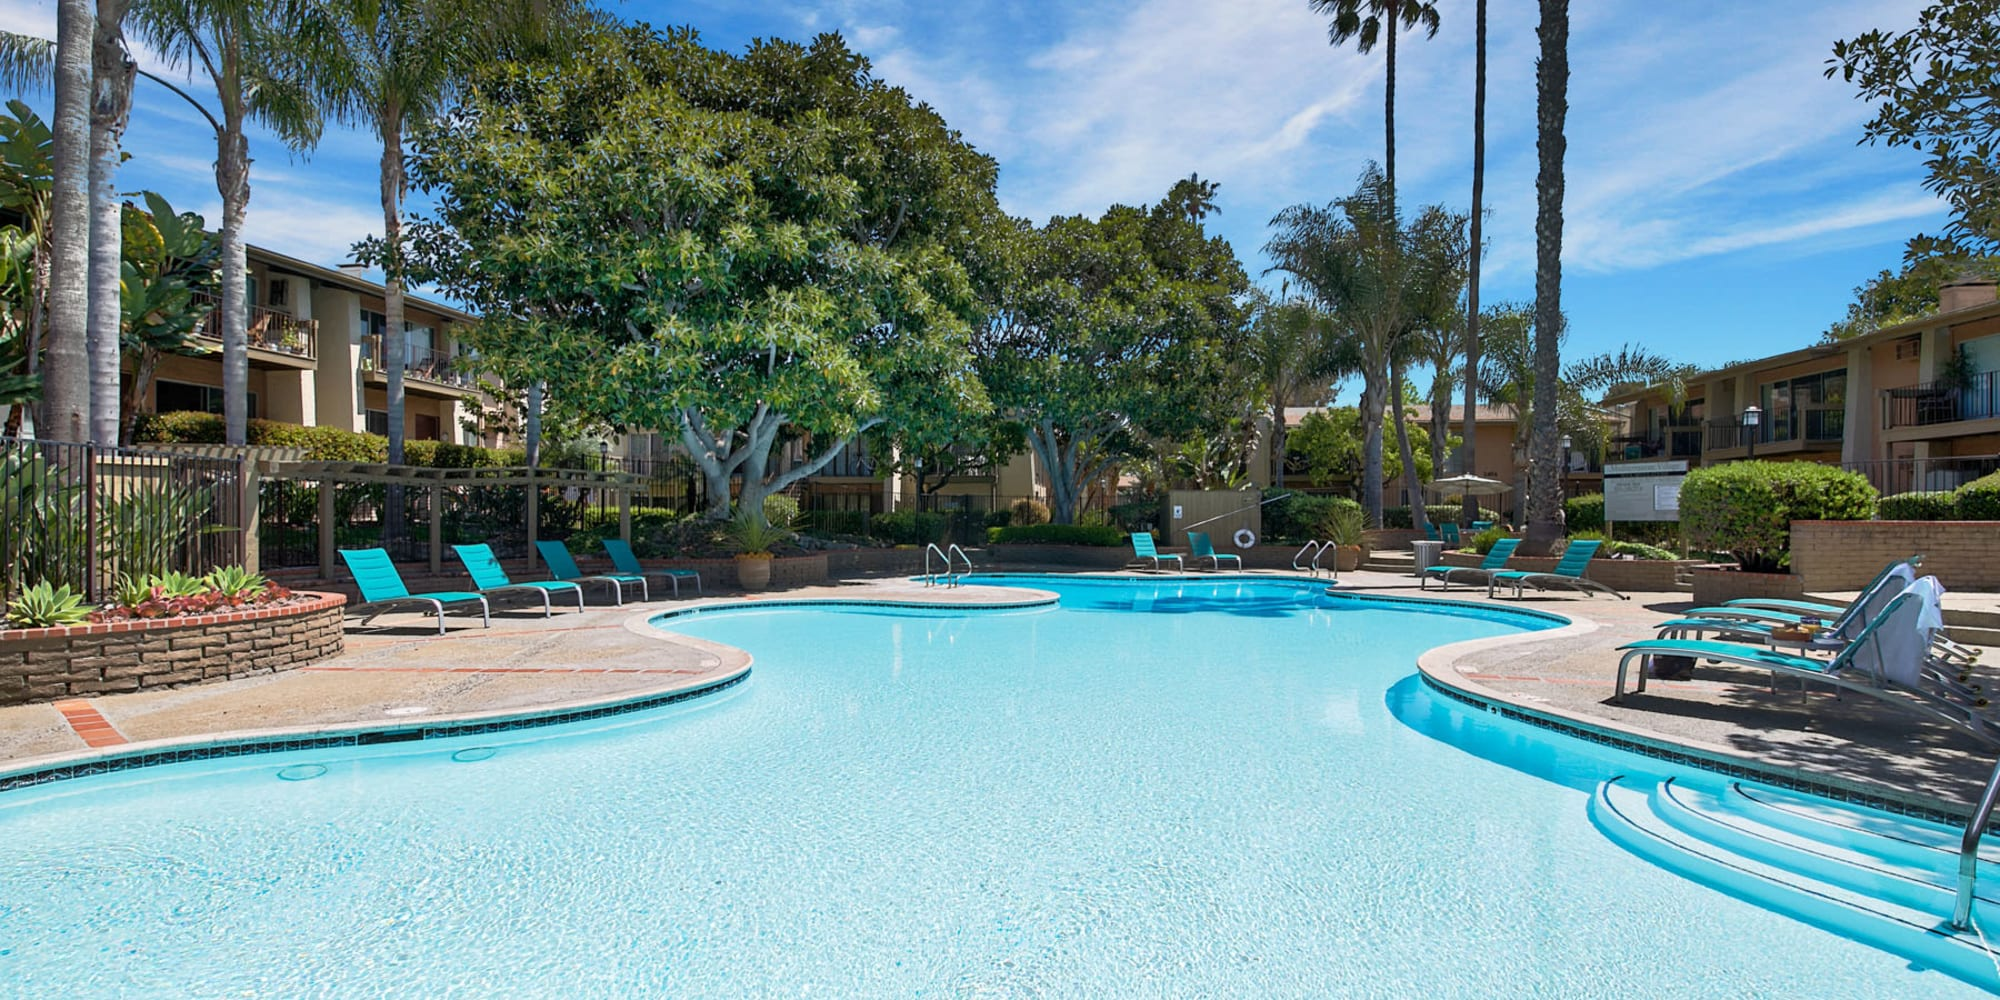 Resort-style swimming pool on a beautiful day at Mediterranean Village Apartments in Costa Mesa, California